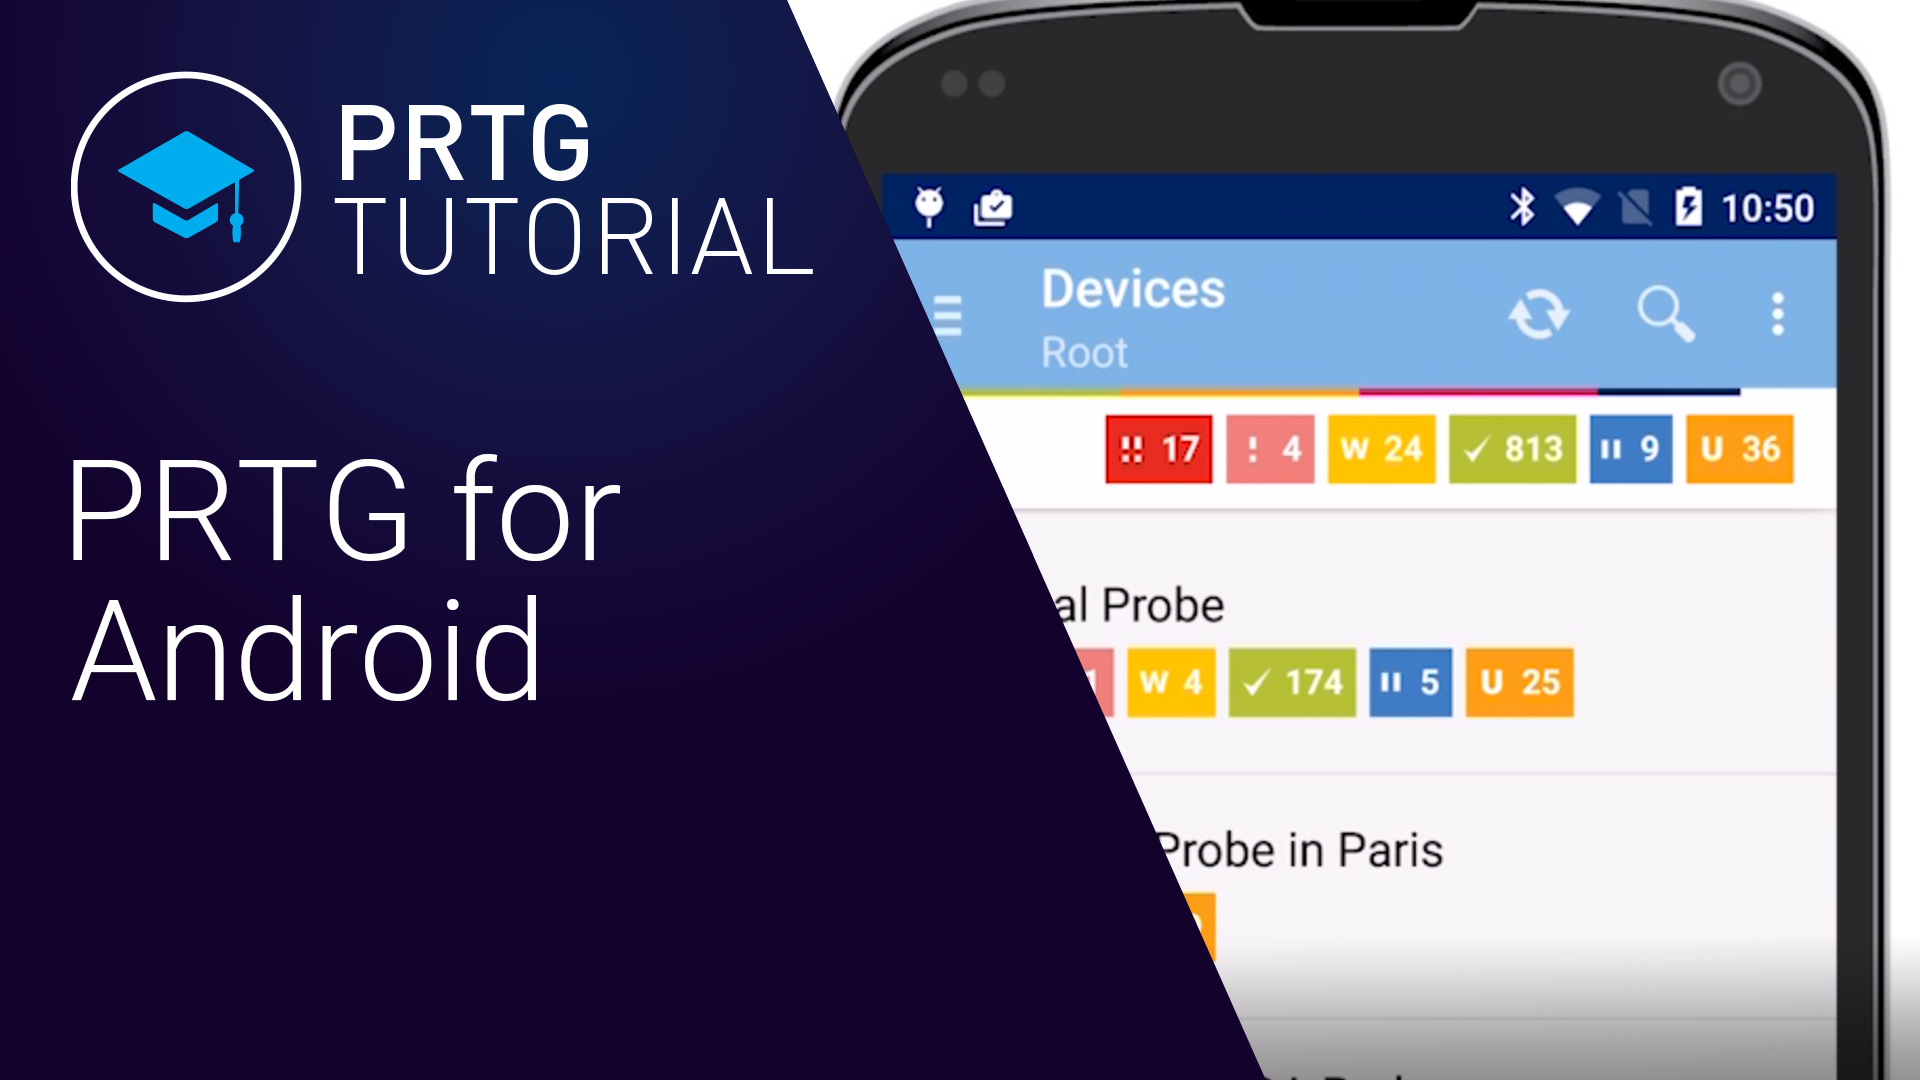 PRTG for Android - Tutorial (Videos)